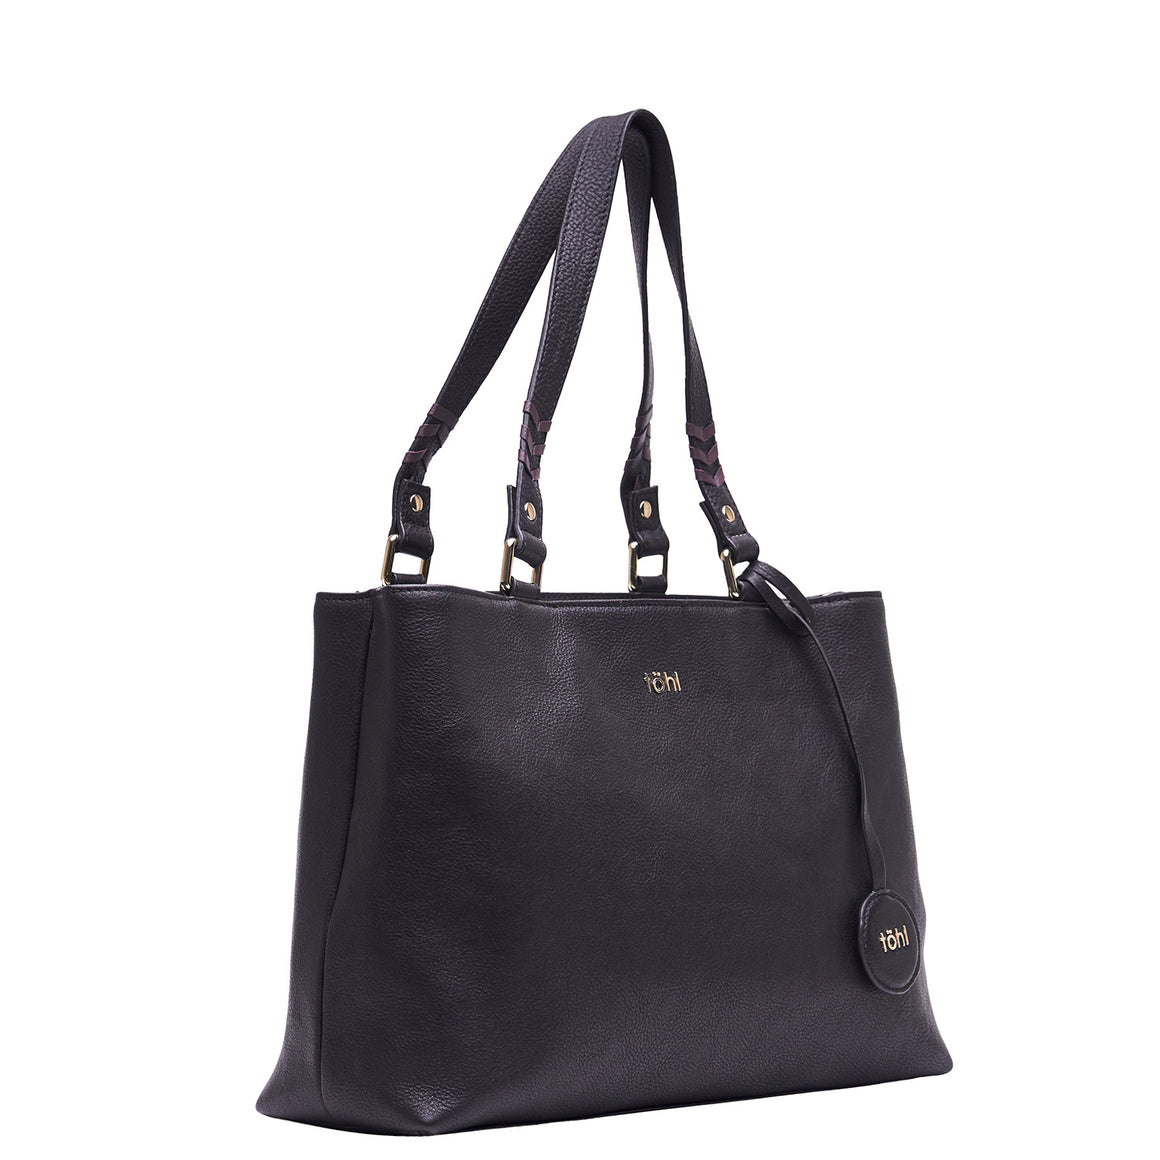 TT 0014 - TOHL FABLE WOMEN'S TOTE BAG - BLACK